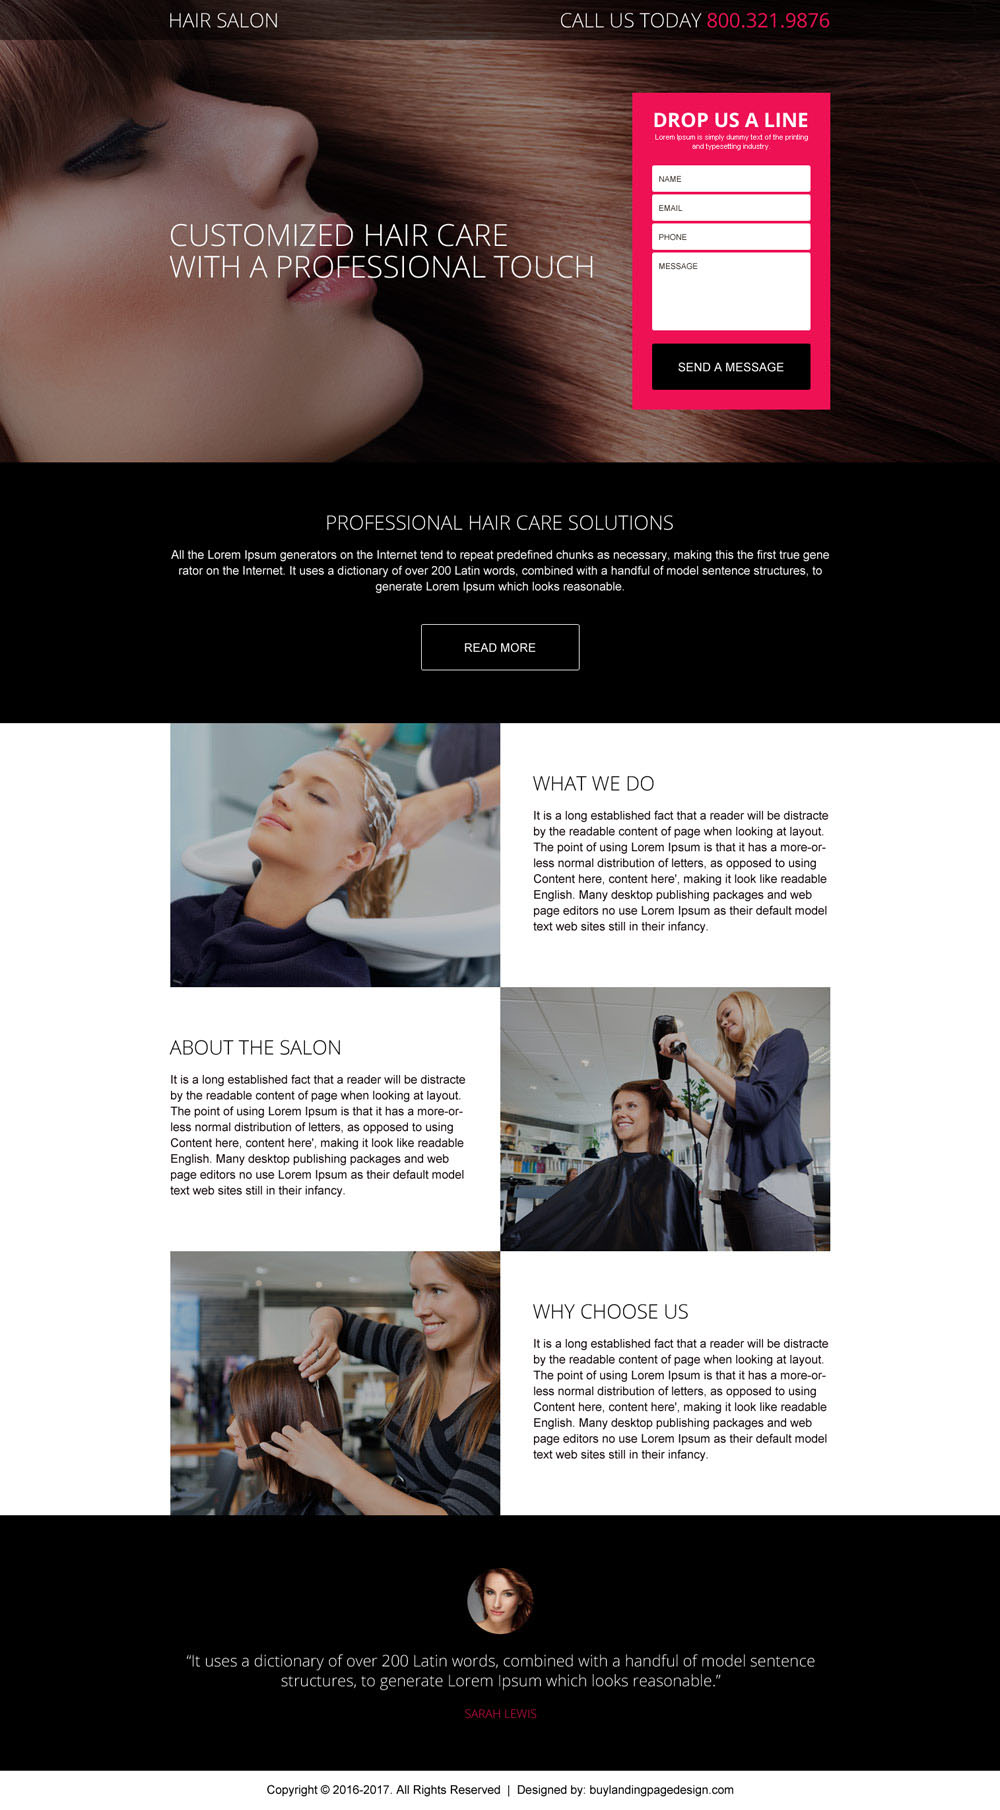 professional-hair-salon-service-lead-gen-landing-page-design-001